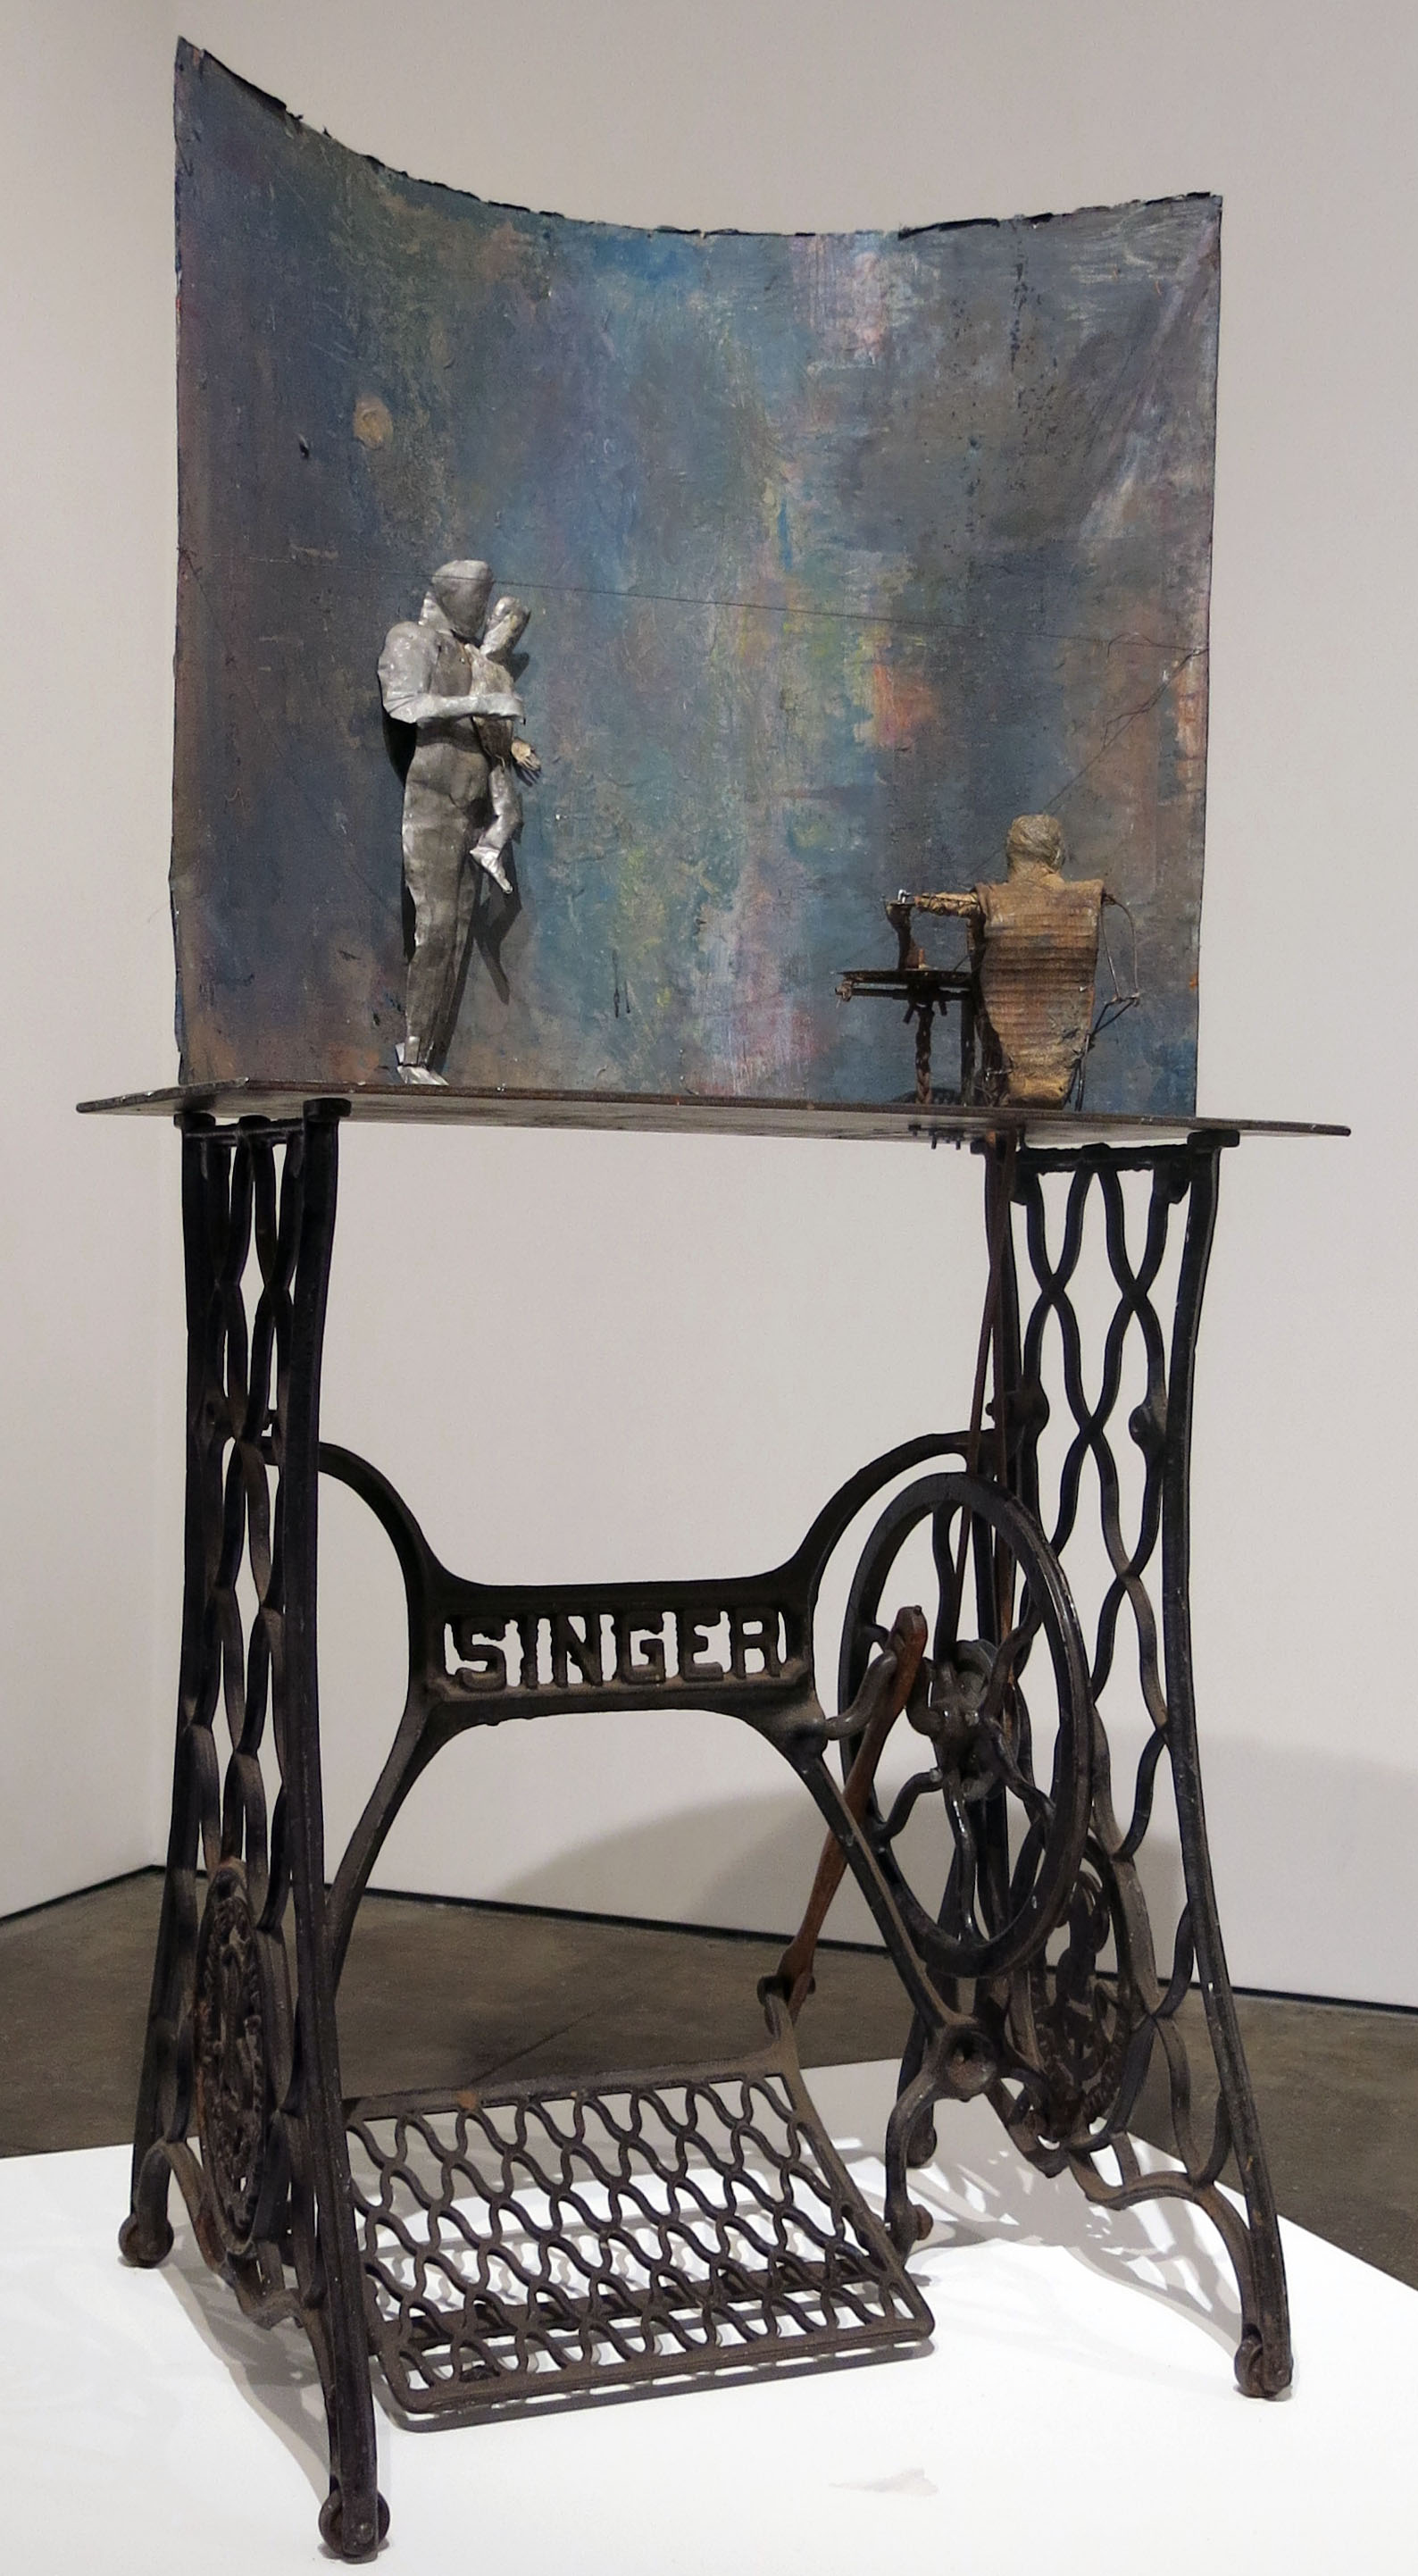 June Leaf,  Bernie,  2011-2015, cast iron, steel plate, tin, painted canvas figure, 51h x 18.5w x 15.25d in.